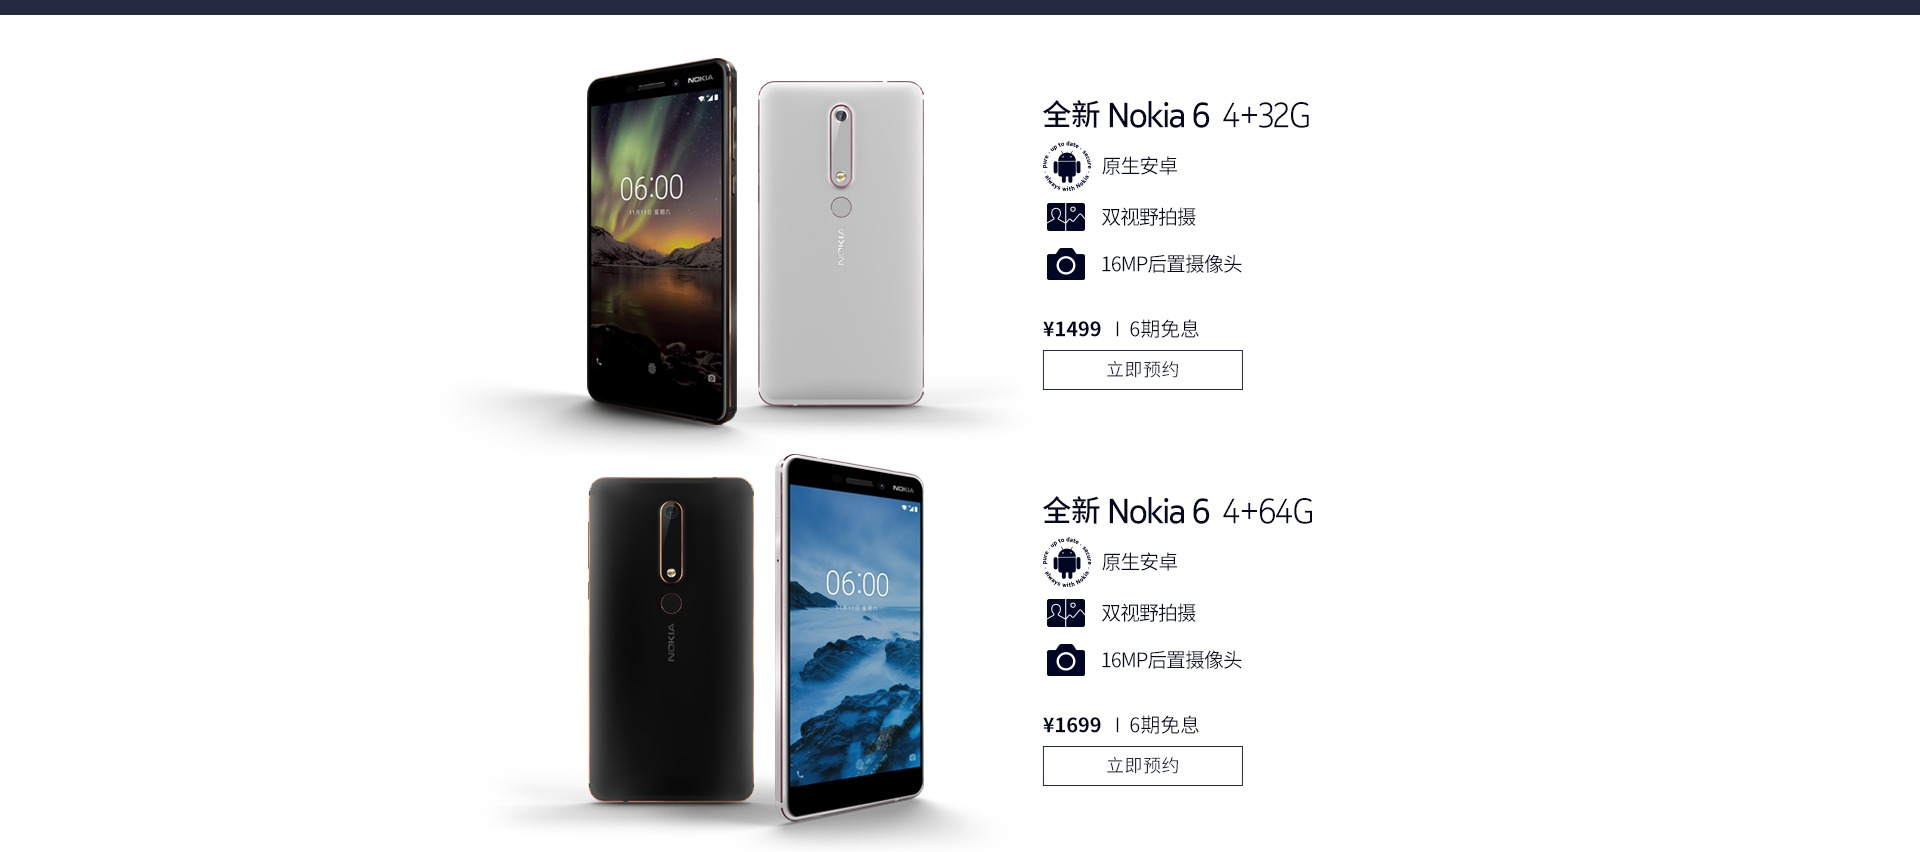 Nokia 6 2018 listed online ahead of the official launch happening tomorrow 4